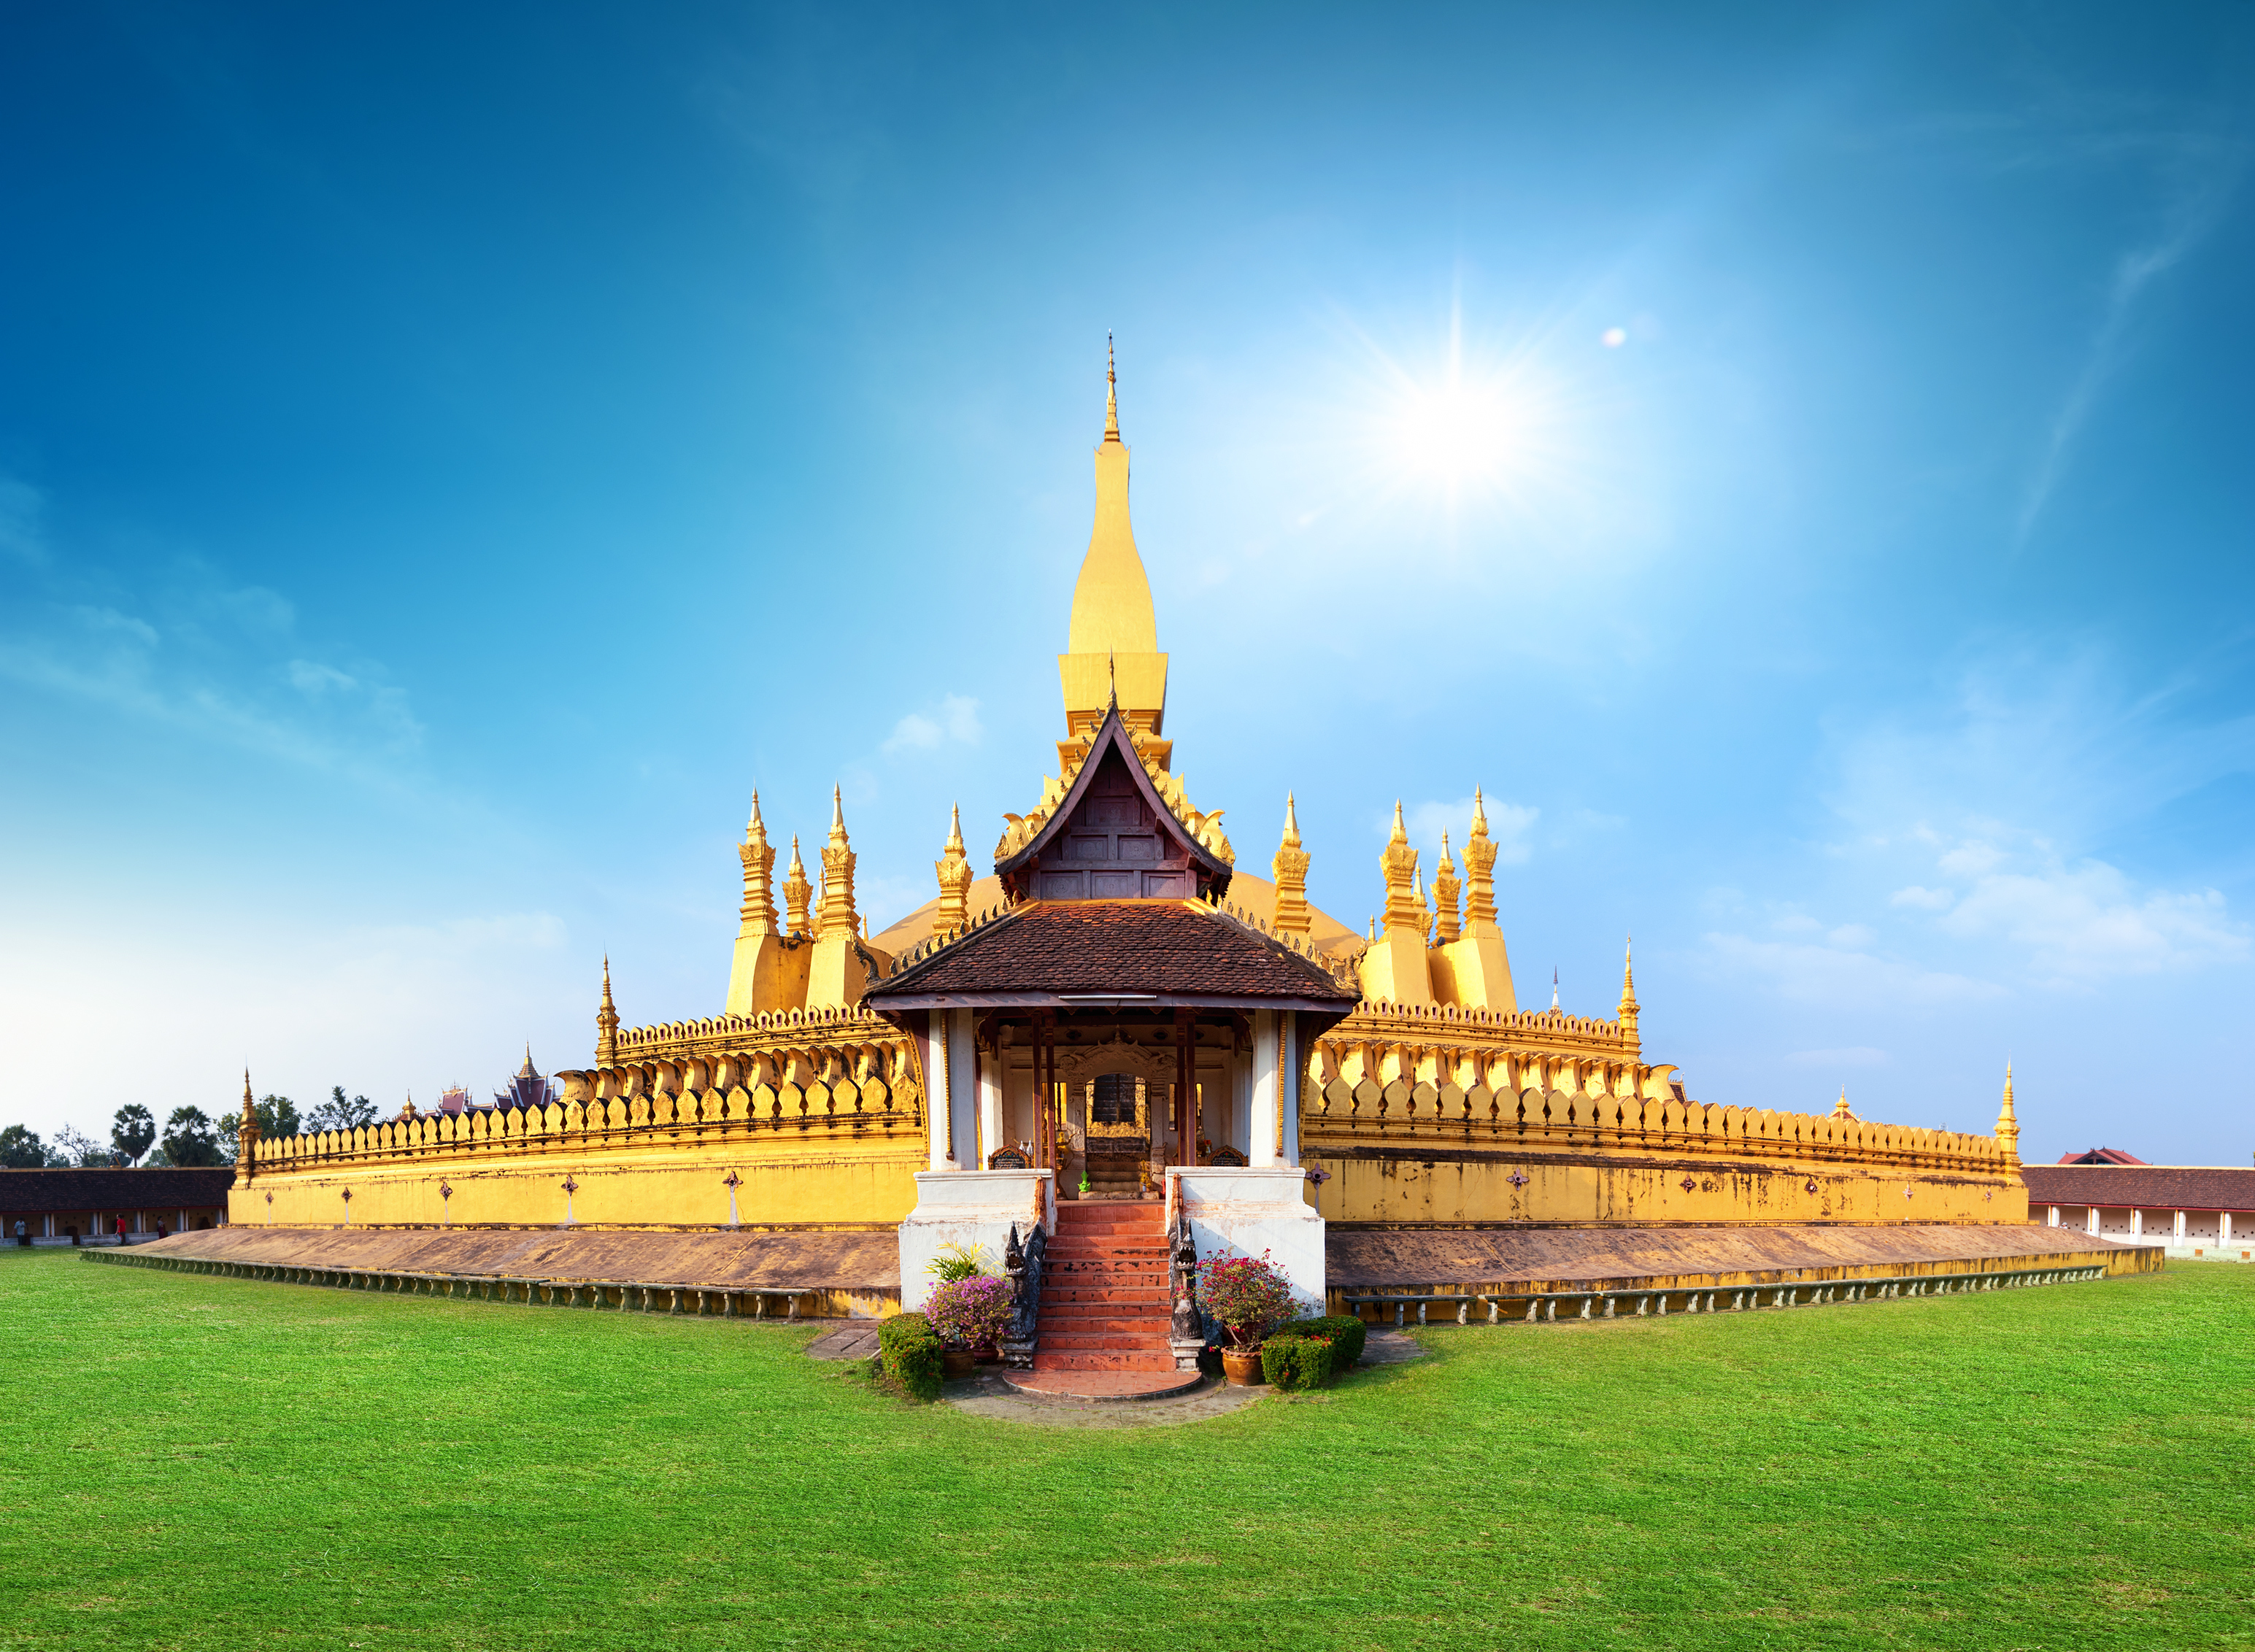 Phra That Luang temple and landmark in Laos, Vientiane